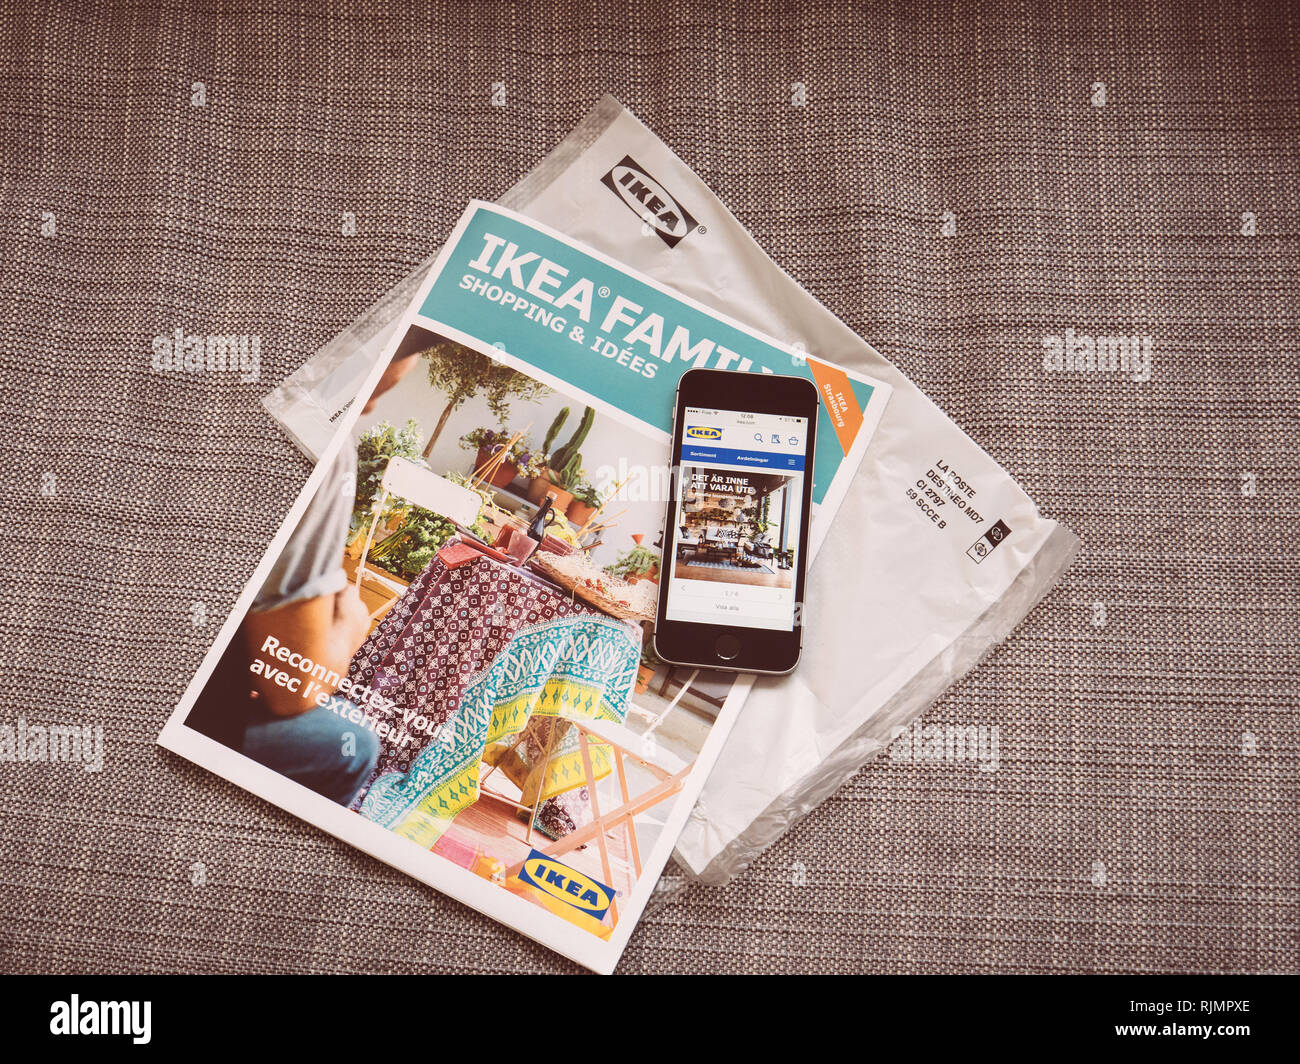 Sav Ikea Telephone Retailer Magazine Stock Photos Retailer Magazine Stock Images